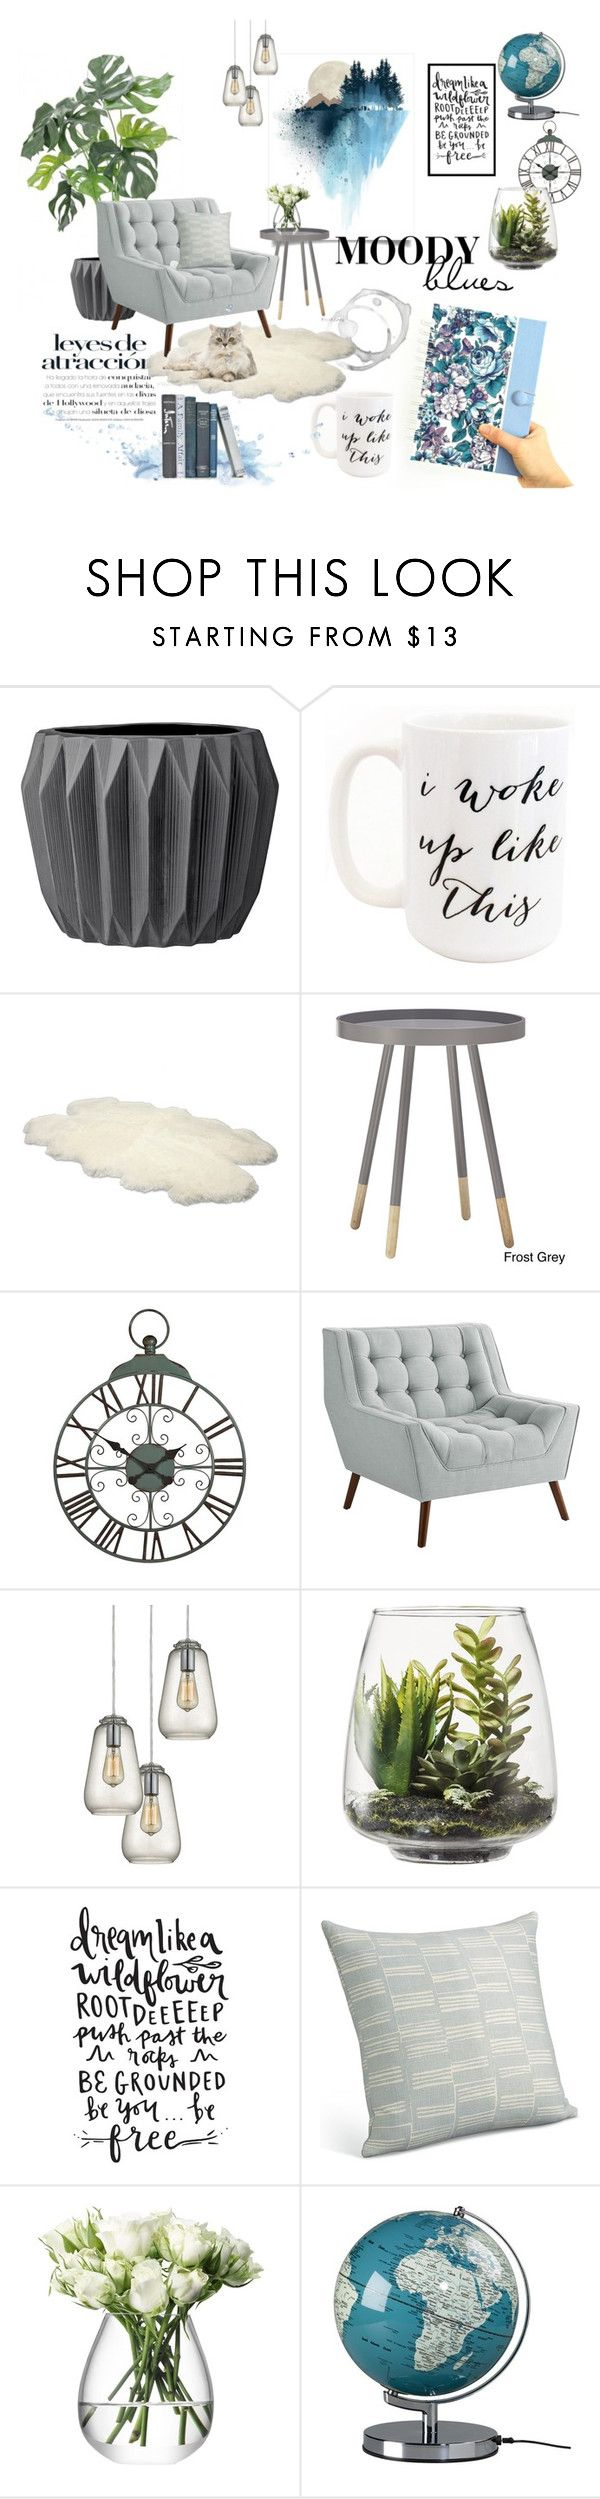 """""""Moody Blues"""" by iwona-estera on Polyvore featuring interior, interiors, interior design, home, home decor, interior decorating, Moon and Lola, UGG Australia, Pier 1 Imports and Dot & Bo"""